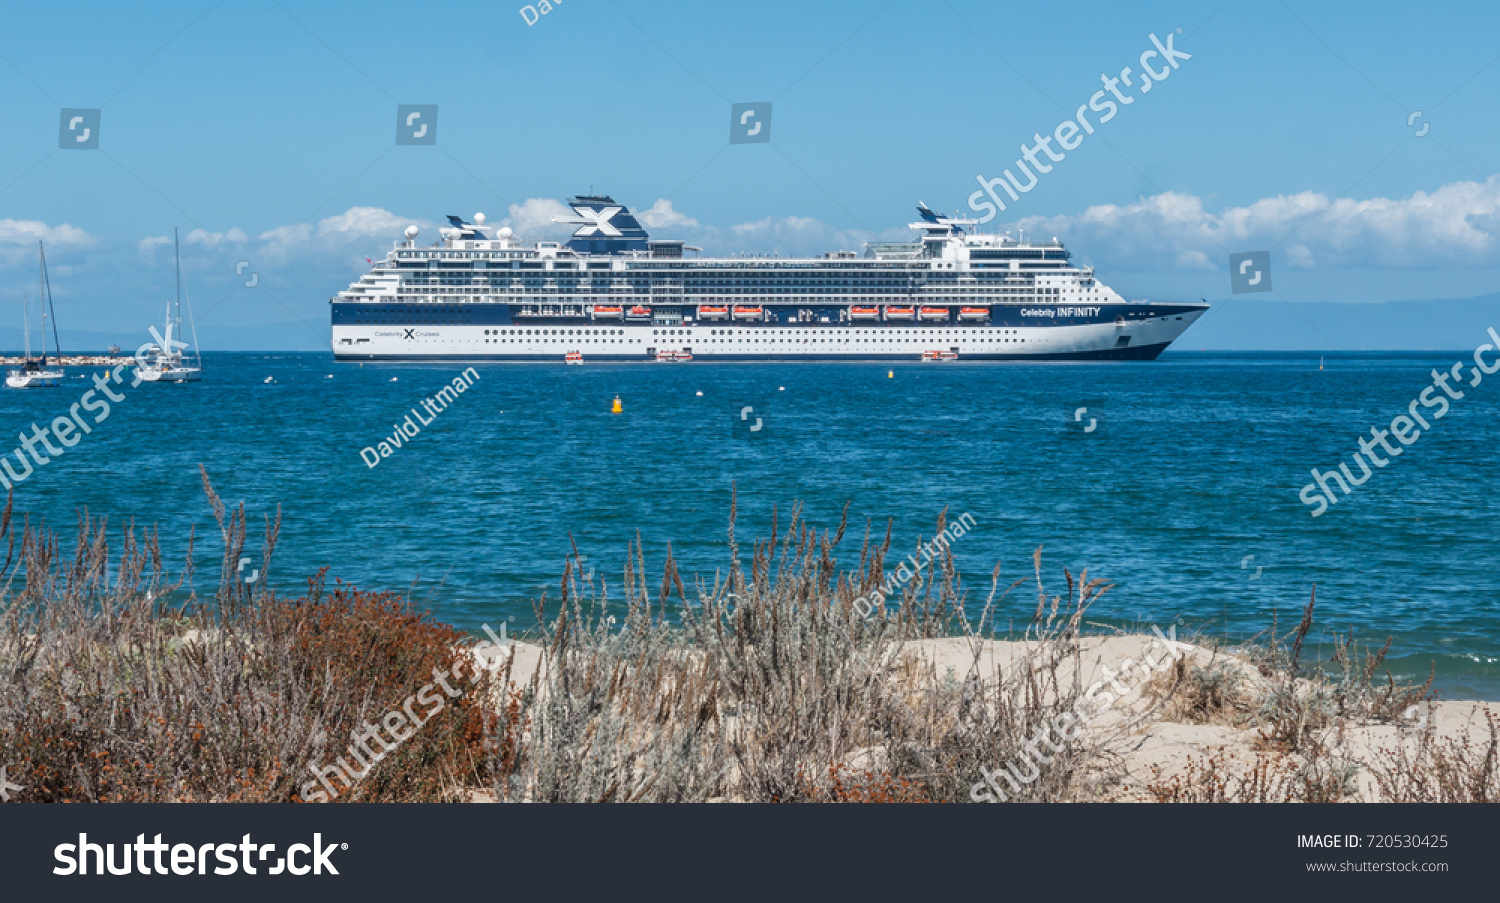 Monterey, California - September 22, 2017: The cruise ship Celebrity Infinity, anchored in the Monterey Bay, is viewed from the coastal sand dunes nearby.  It can hold up to 2200 people.